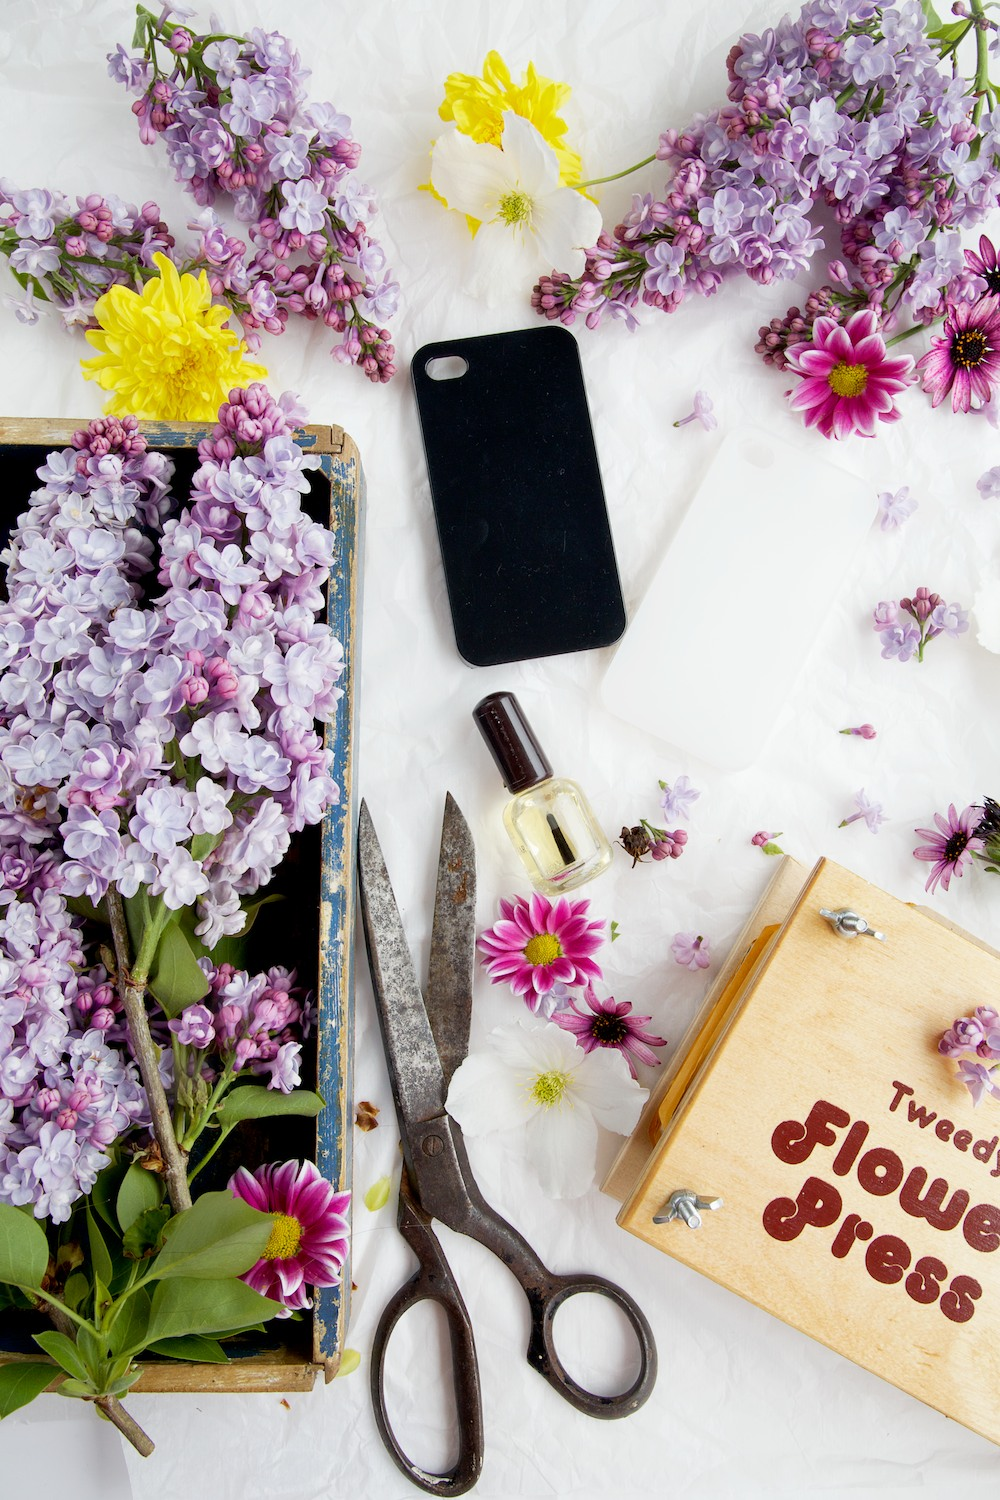 Pressed Flower Phone Case     DIY     Capture by Lucy KnMKmkBs